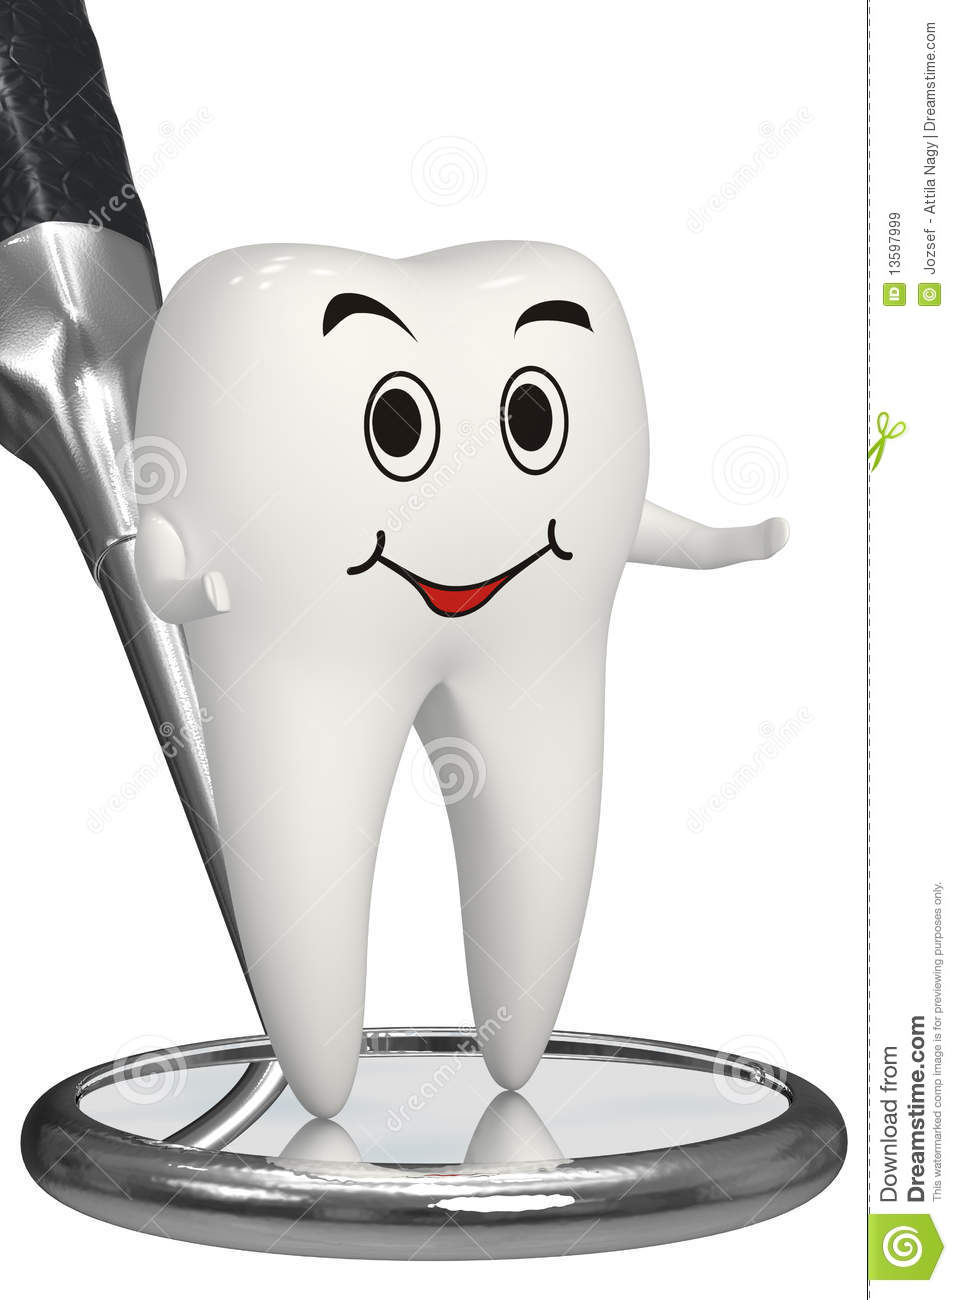 3d Smiling Tooth On Dental Mirror Isolated Icon Royalty Free Stock ...